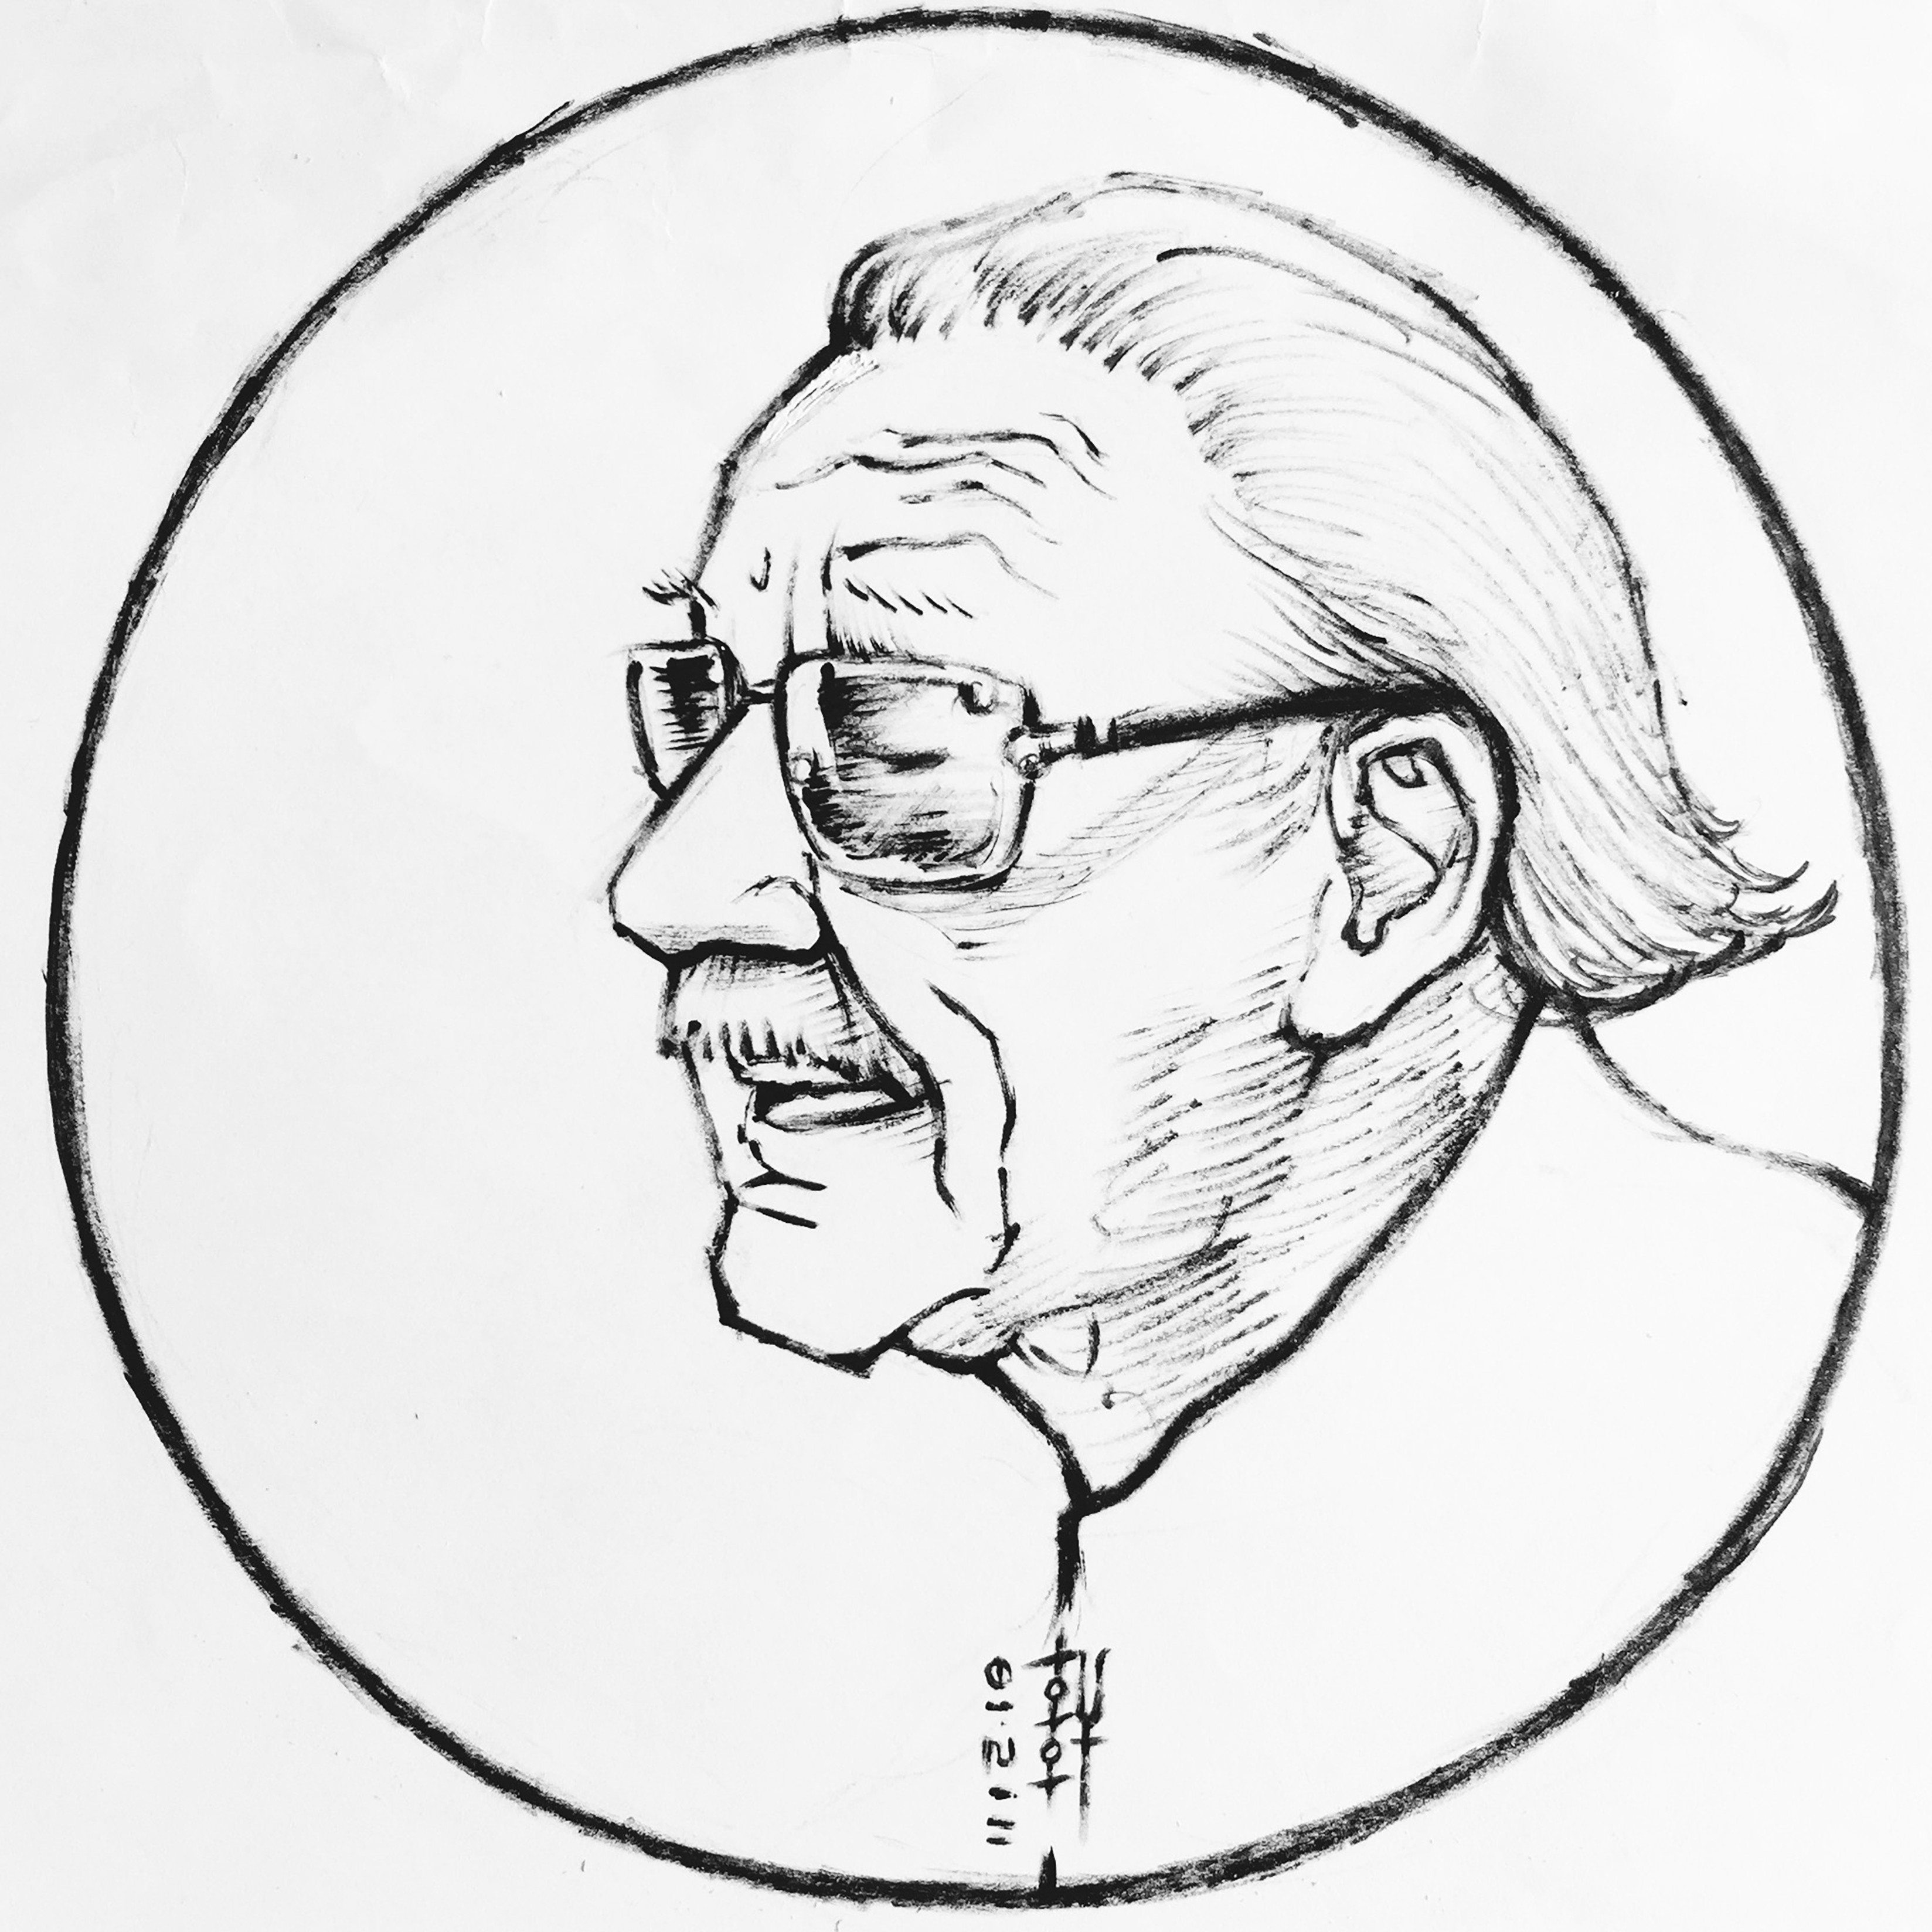 Day 11-12-18 - Stan Lee